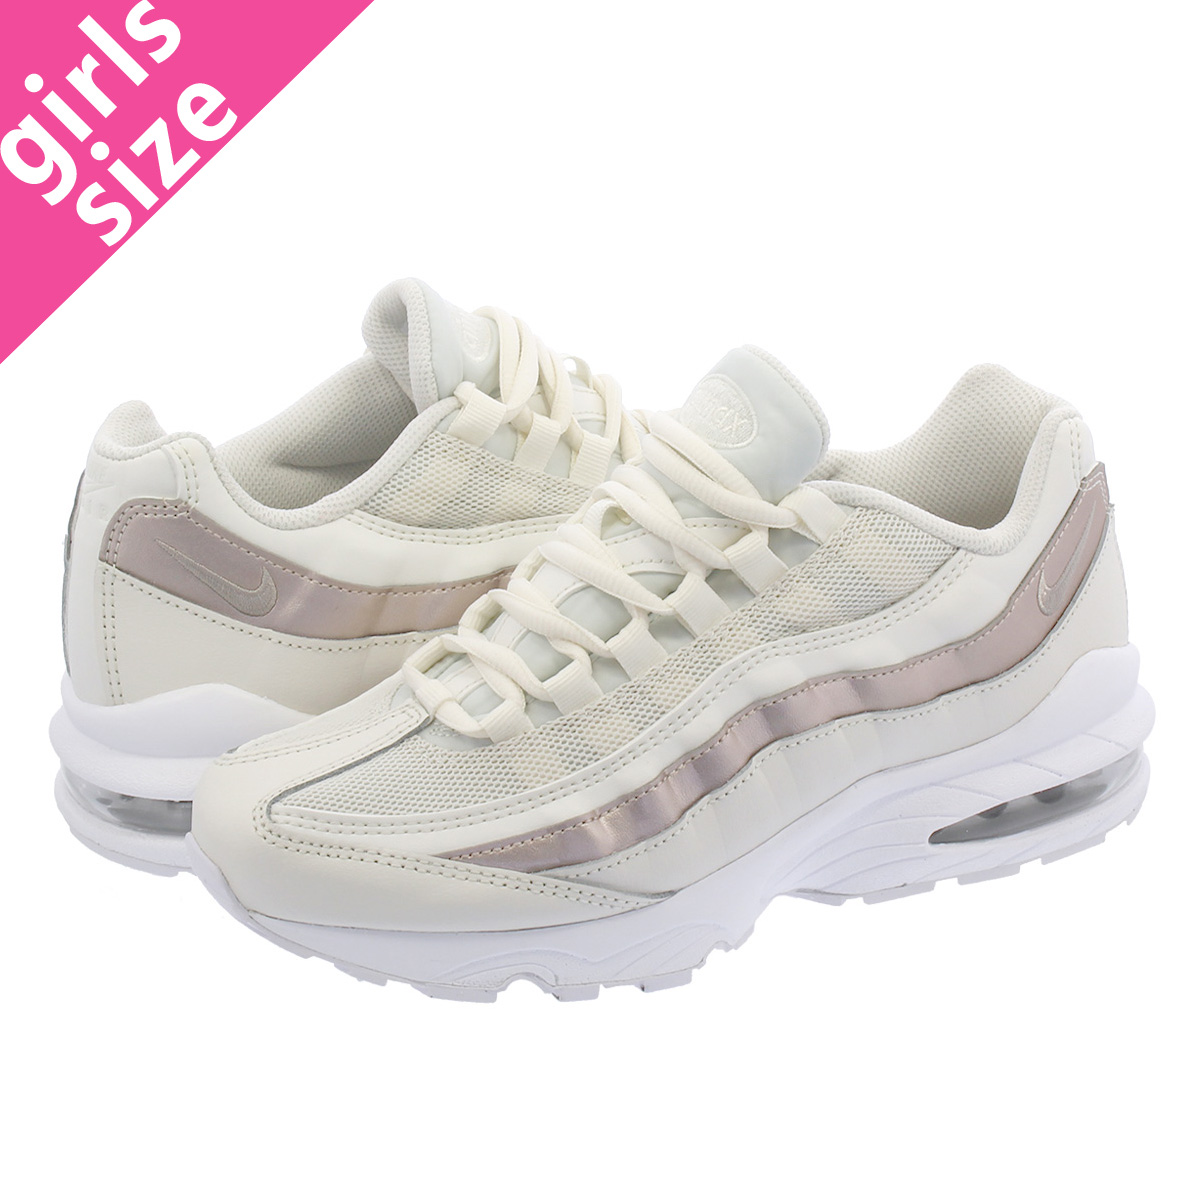 40a35a15c60 LOWTEX BIG-SMALL SHOP  NIKE AIR MAX 95 GS Kie Ney AMAX 95 GS BONE ...